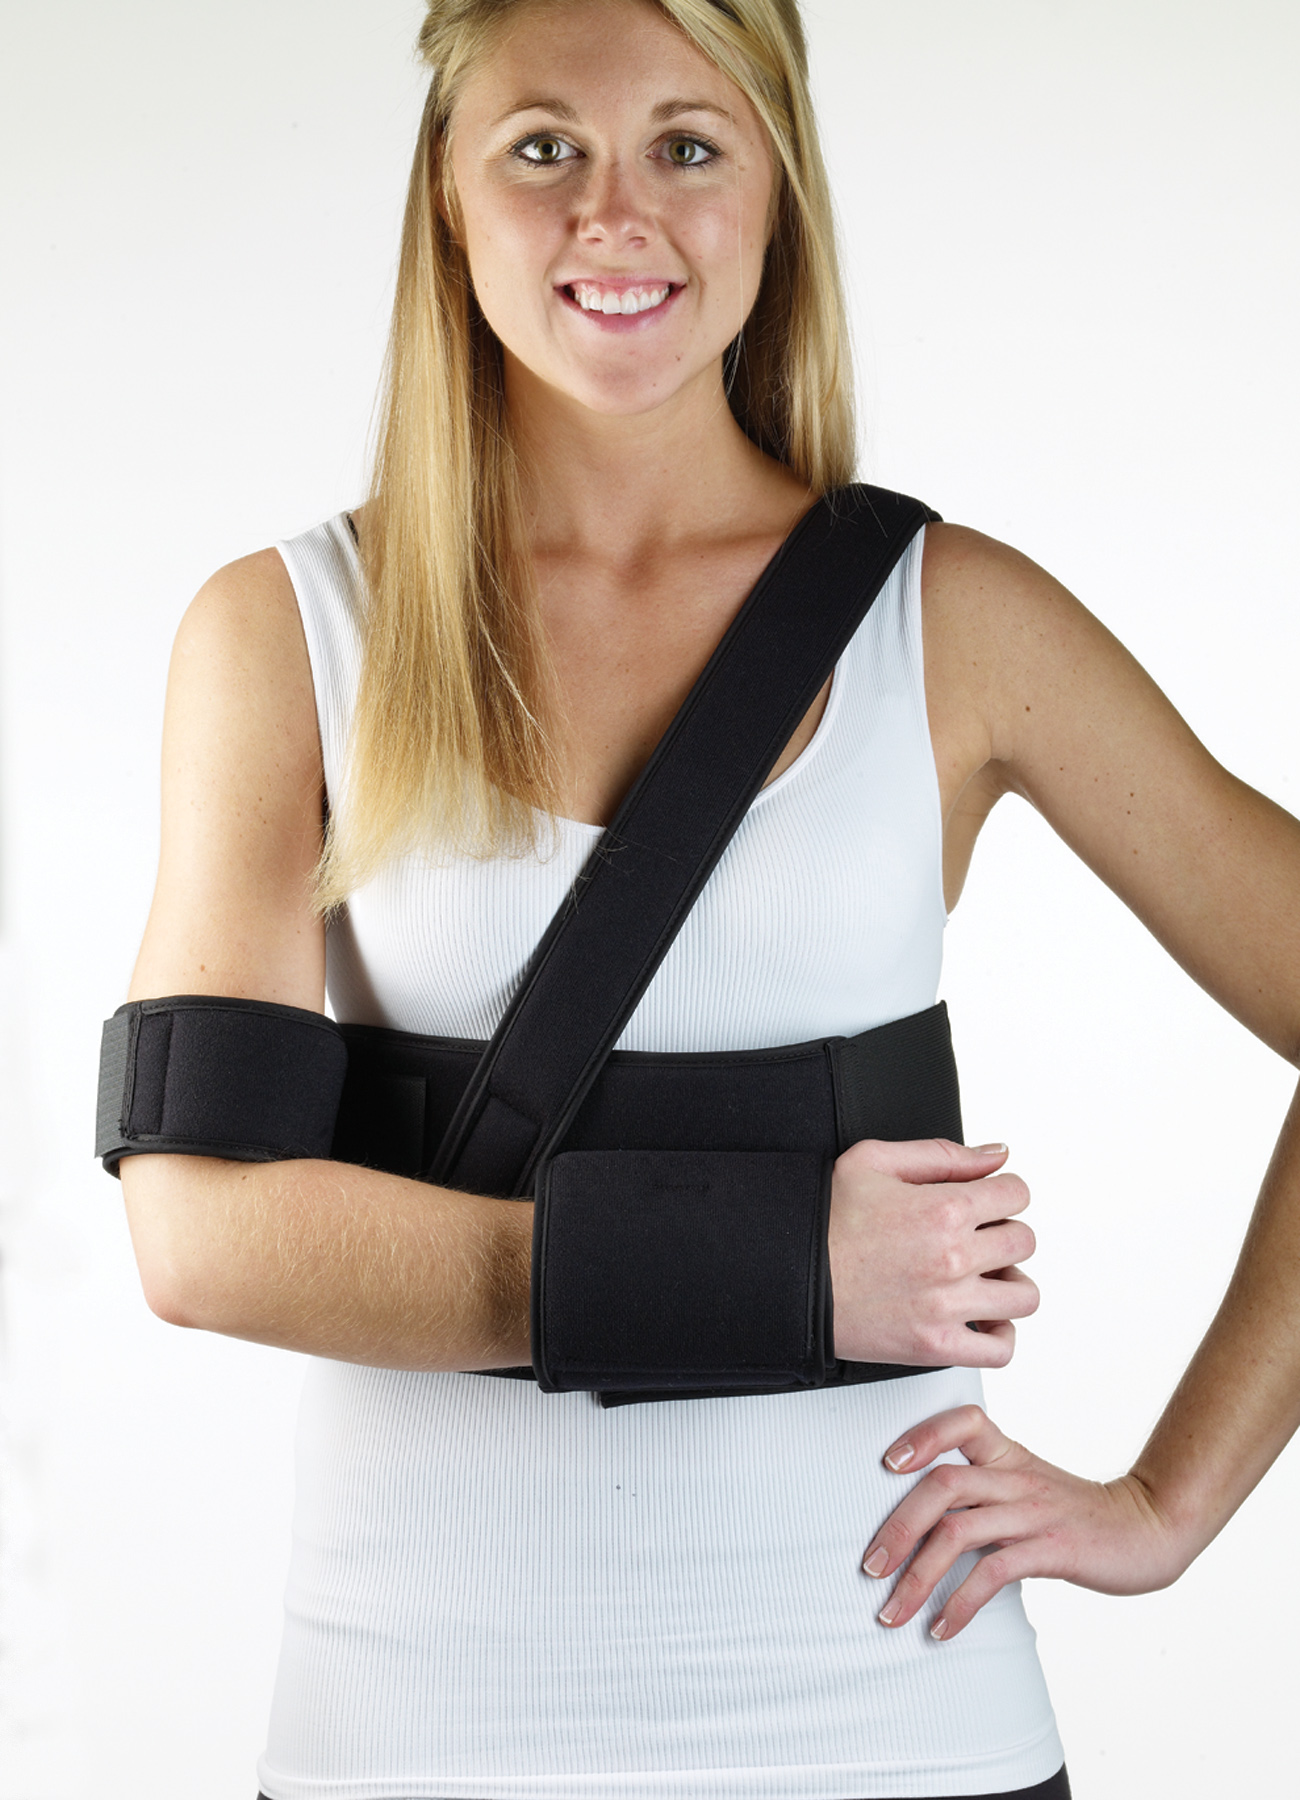 Universal Comfort Shoulder Immobilizer